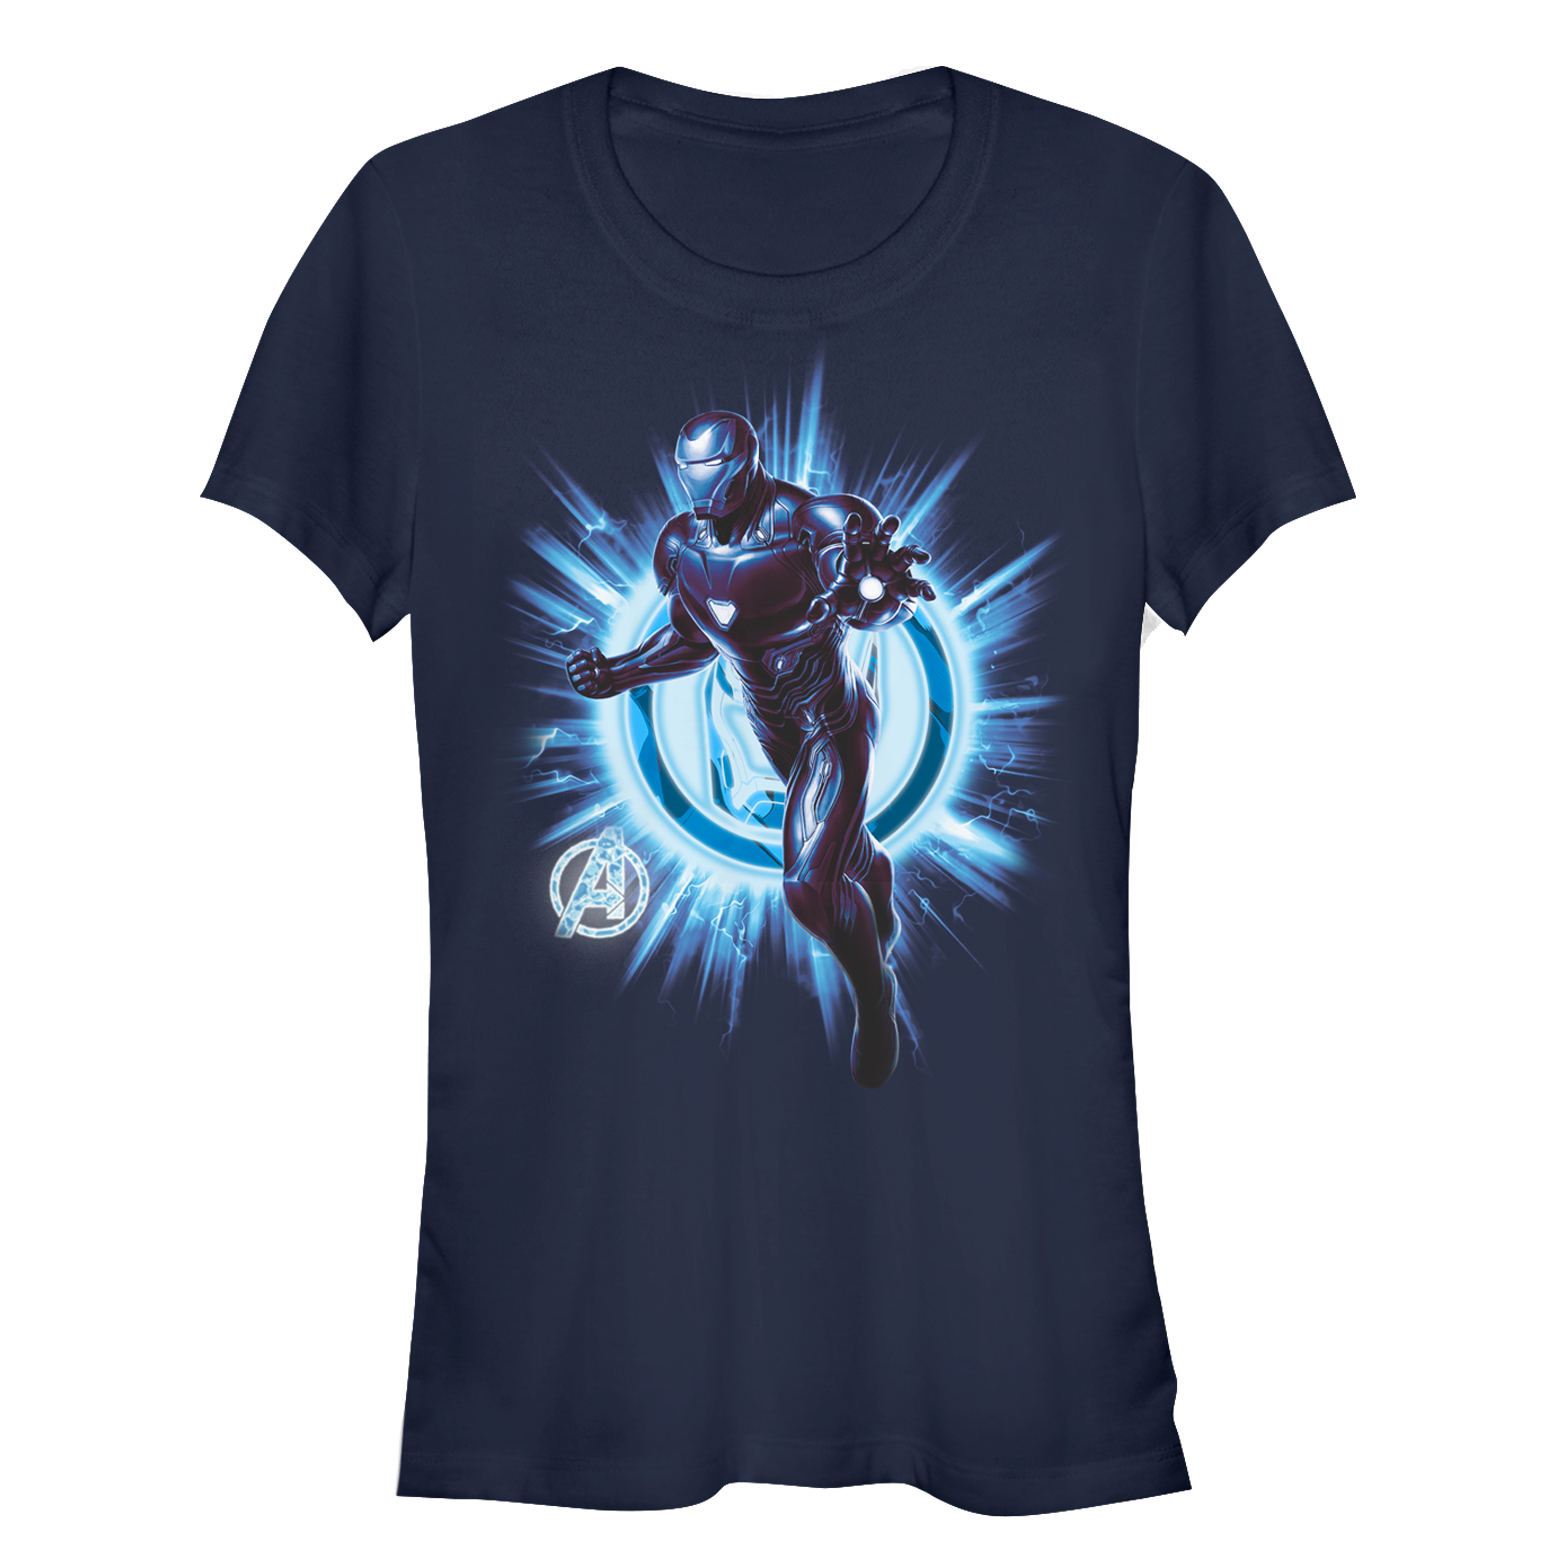 Marvel Juniors' Avengers: Endgame Iron Man Star Logo T-Shirt